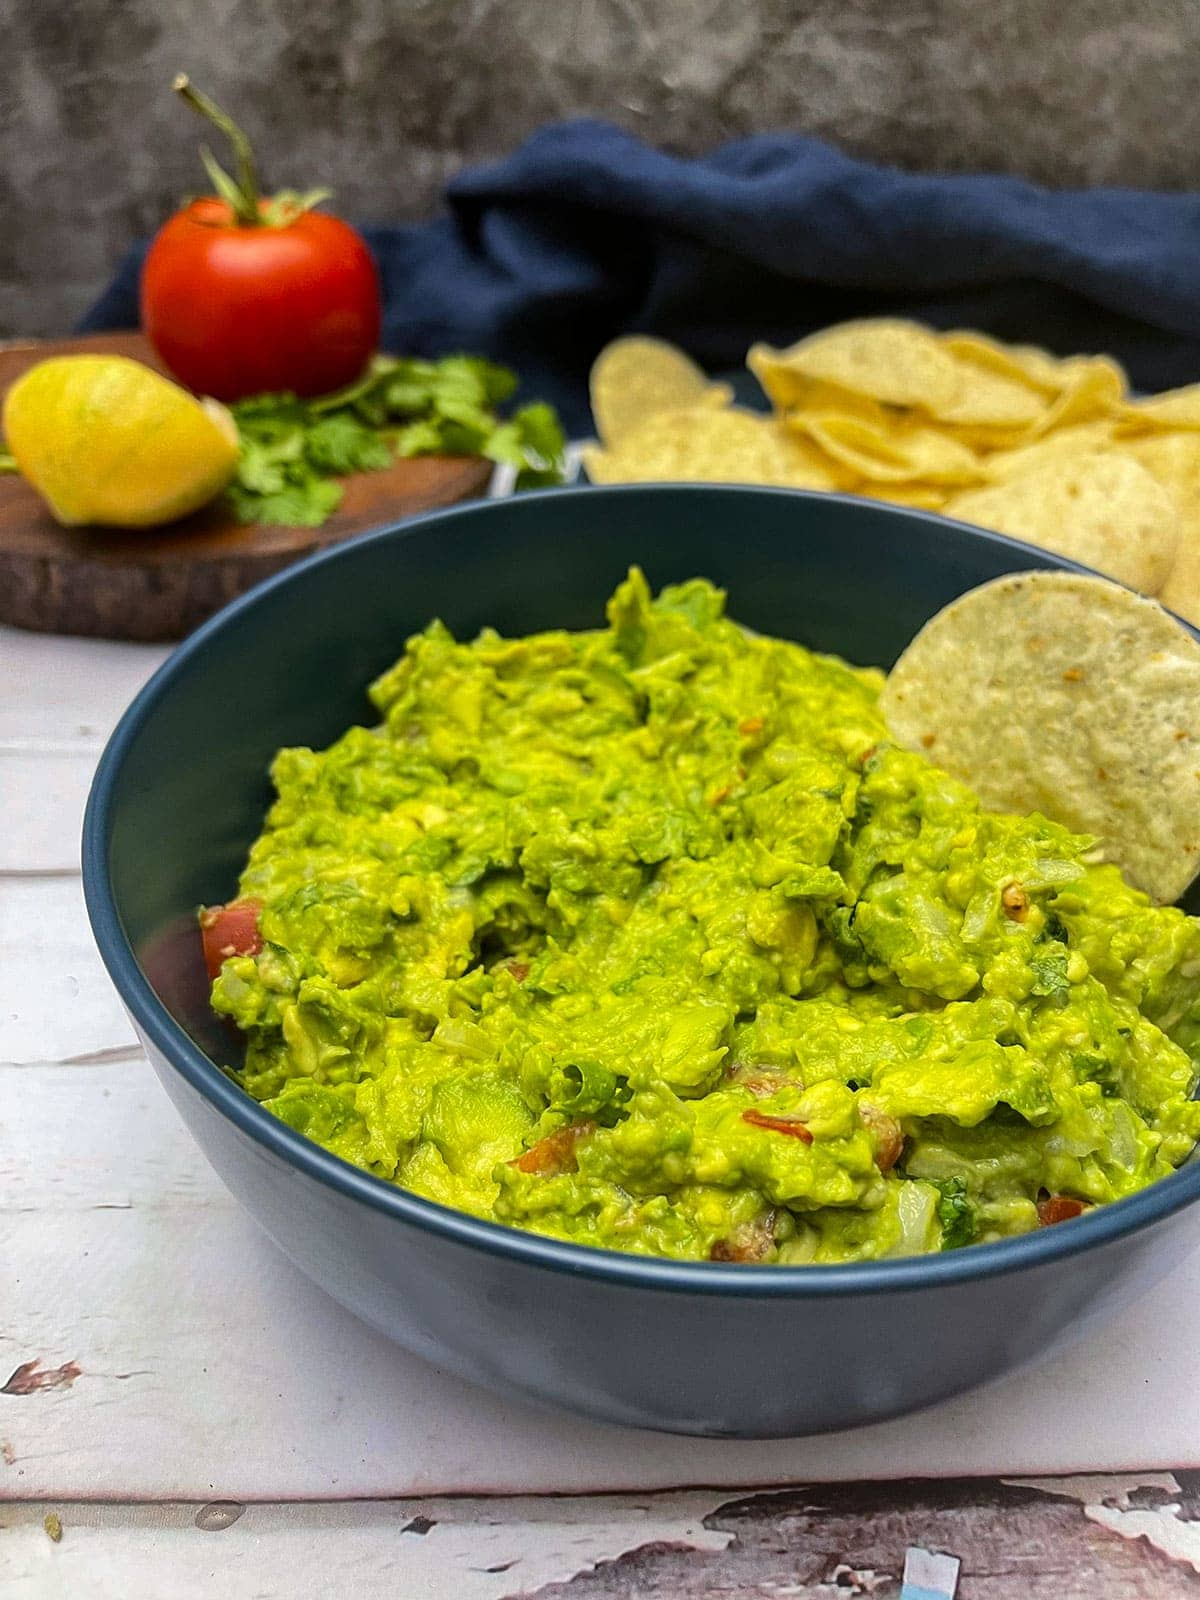 guacamole in a blue bowl with chips